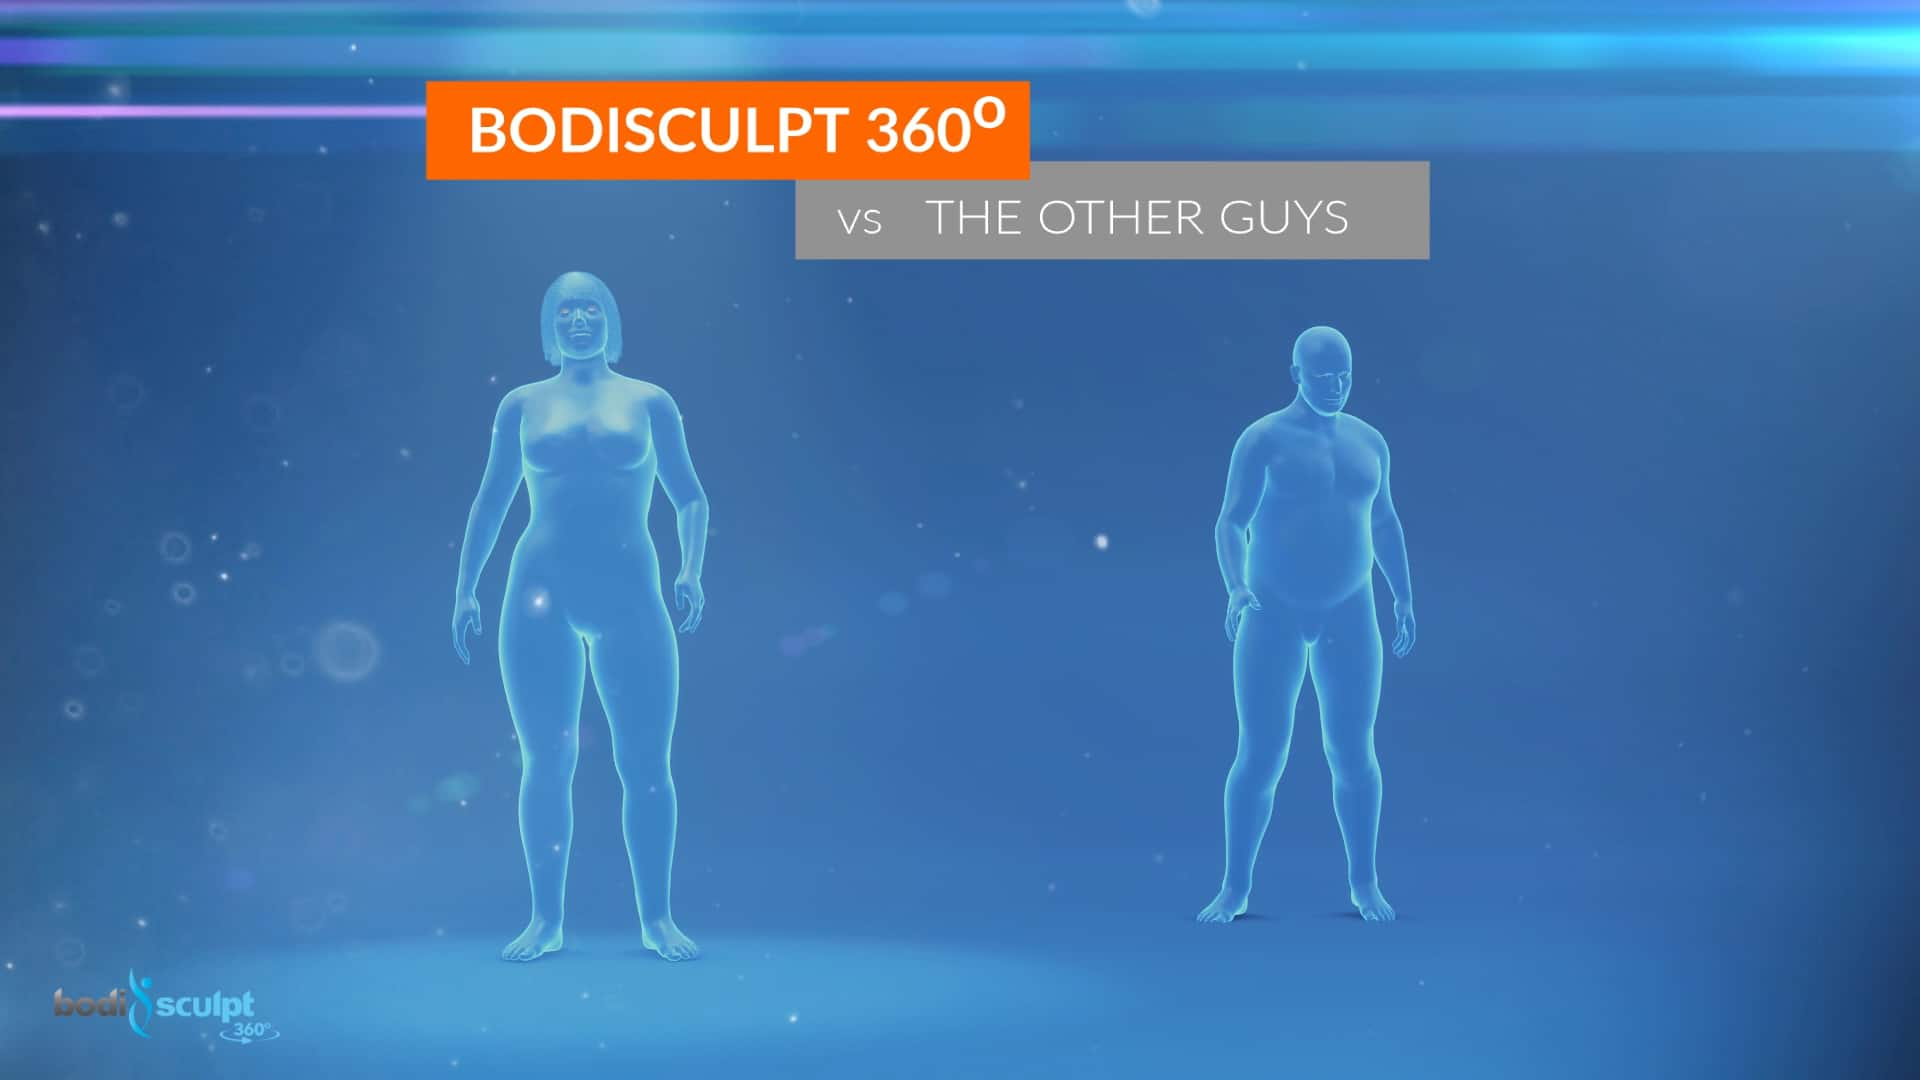 Bodisculpt 360 Vs The Other Guys